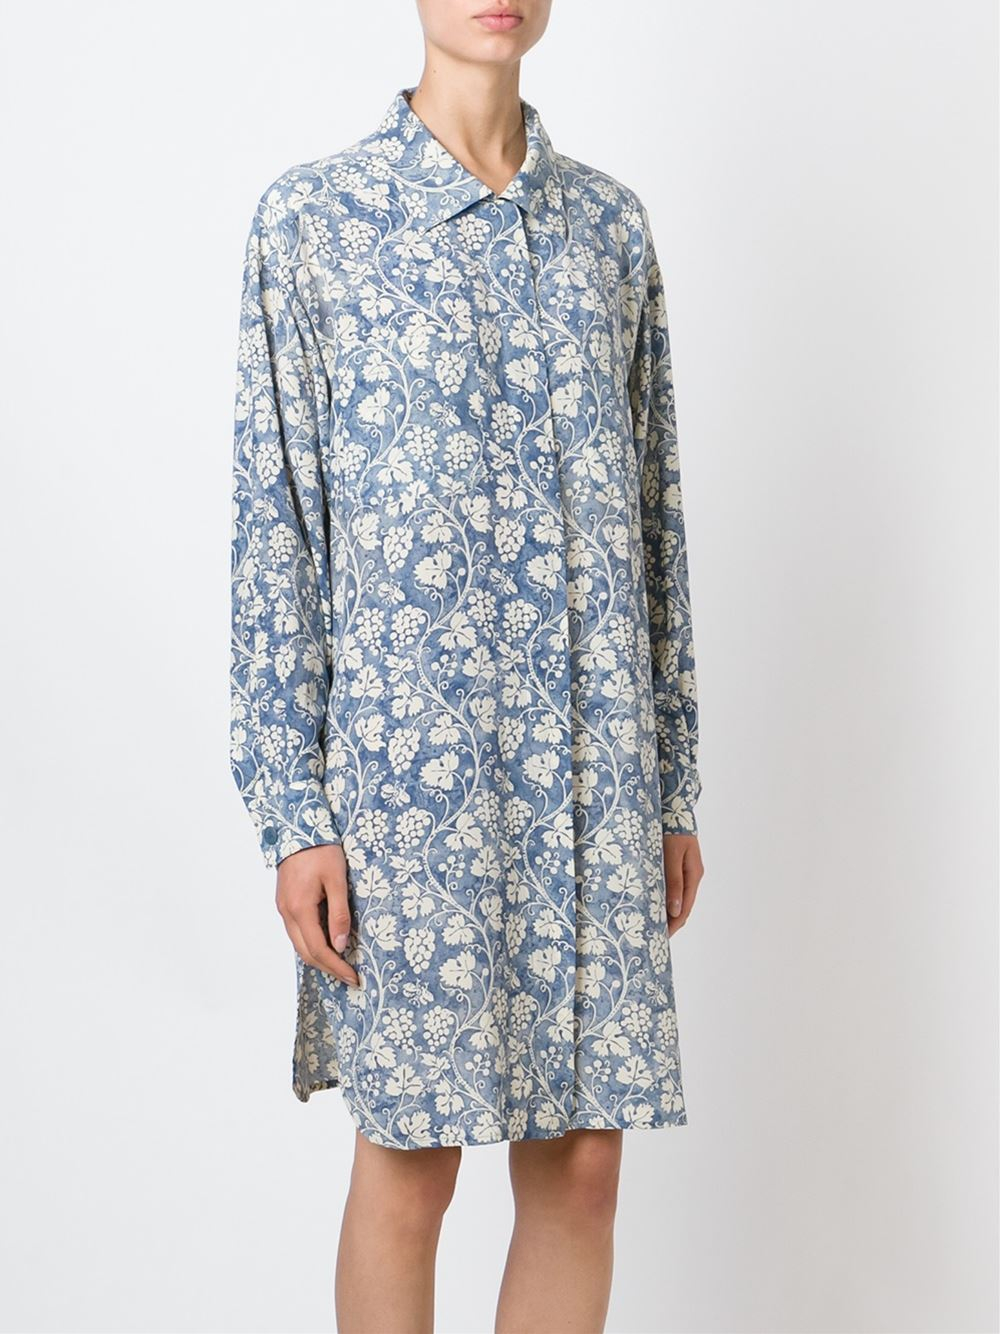 louis feraud vintage vine print shirt dress in white blue